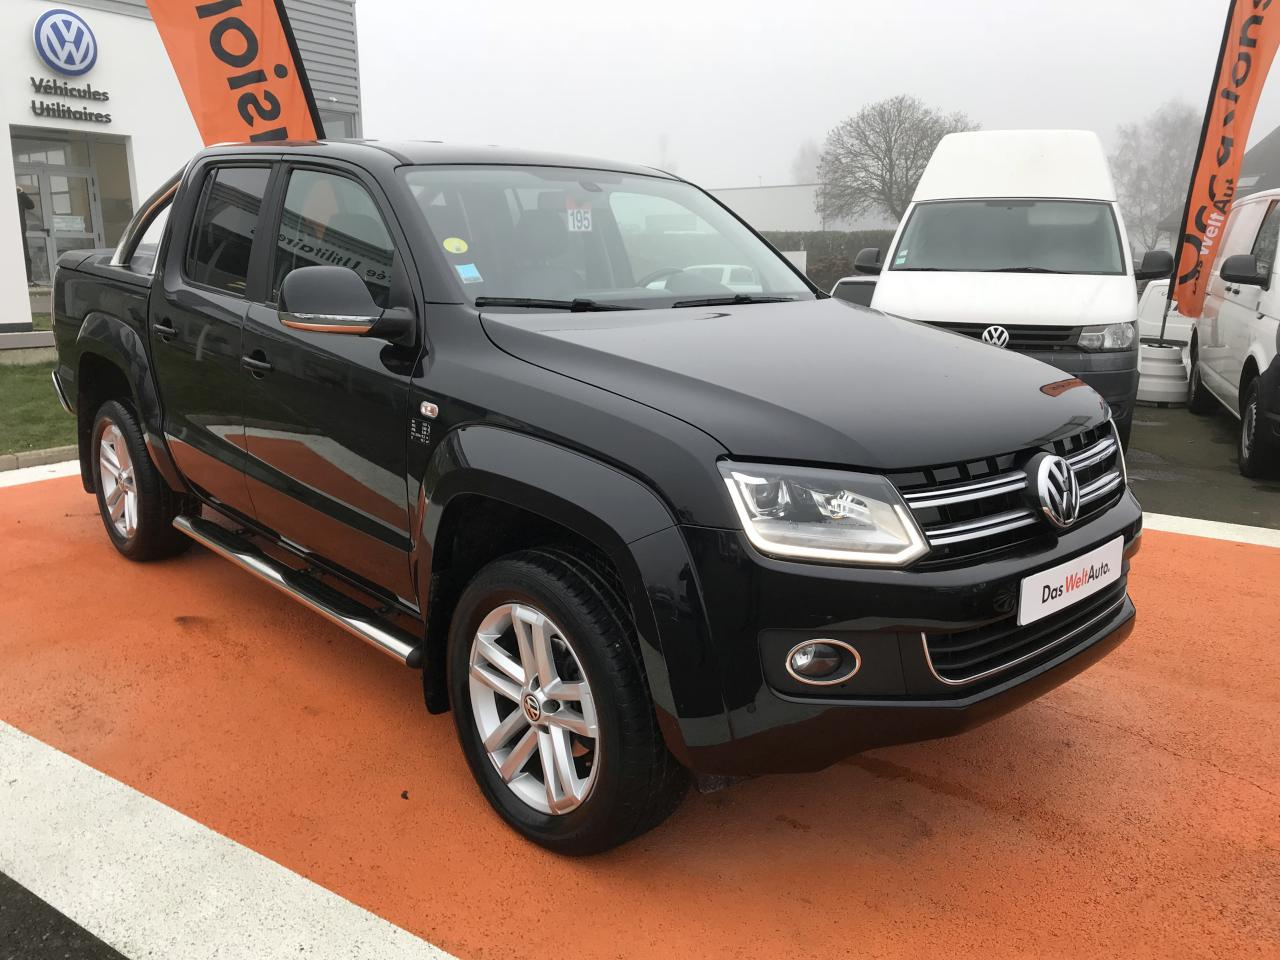 volkswagen amarok 180 bva 8 groupe aubr e garages. Black Bedroom Furniture Sets. Home Design Ideas